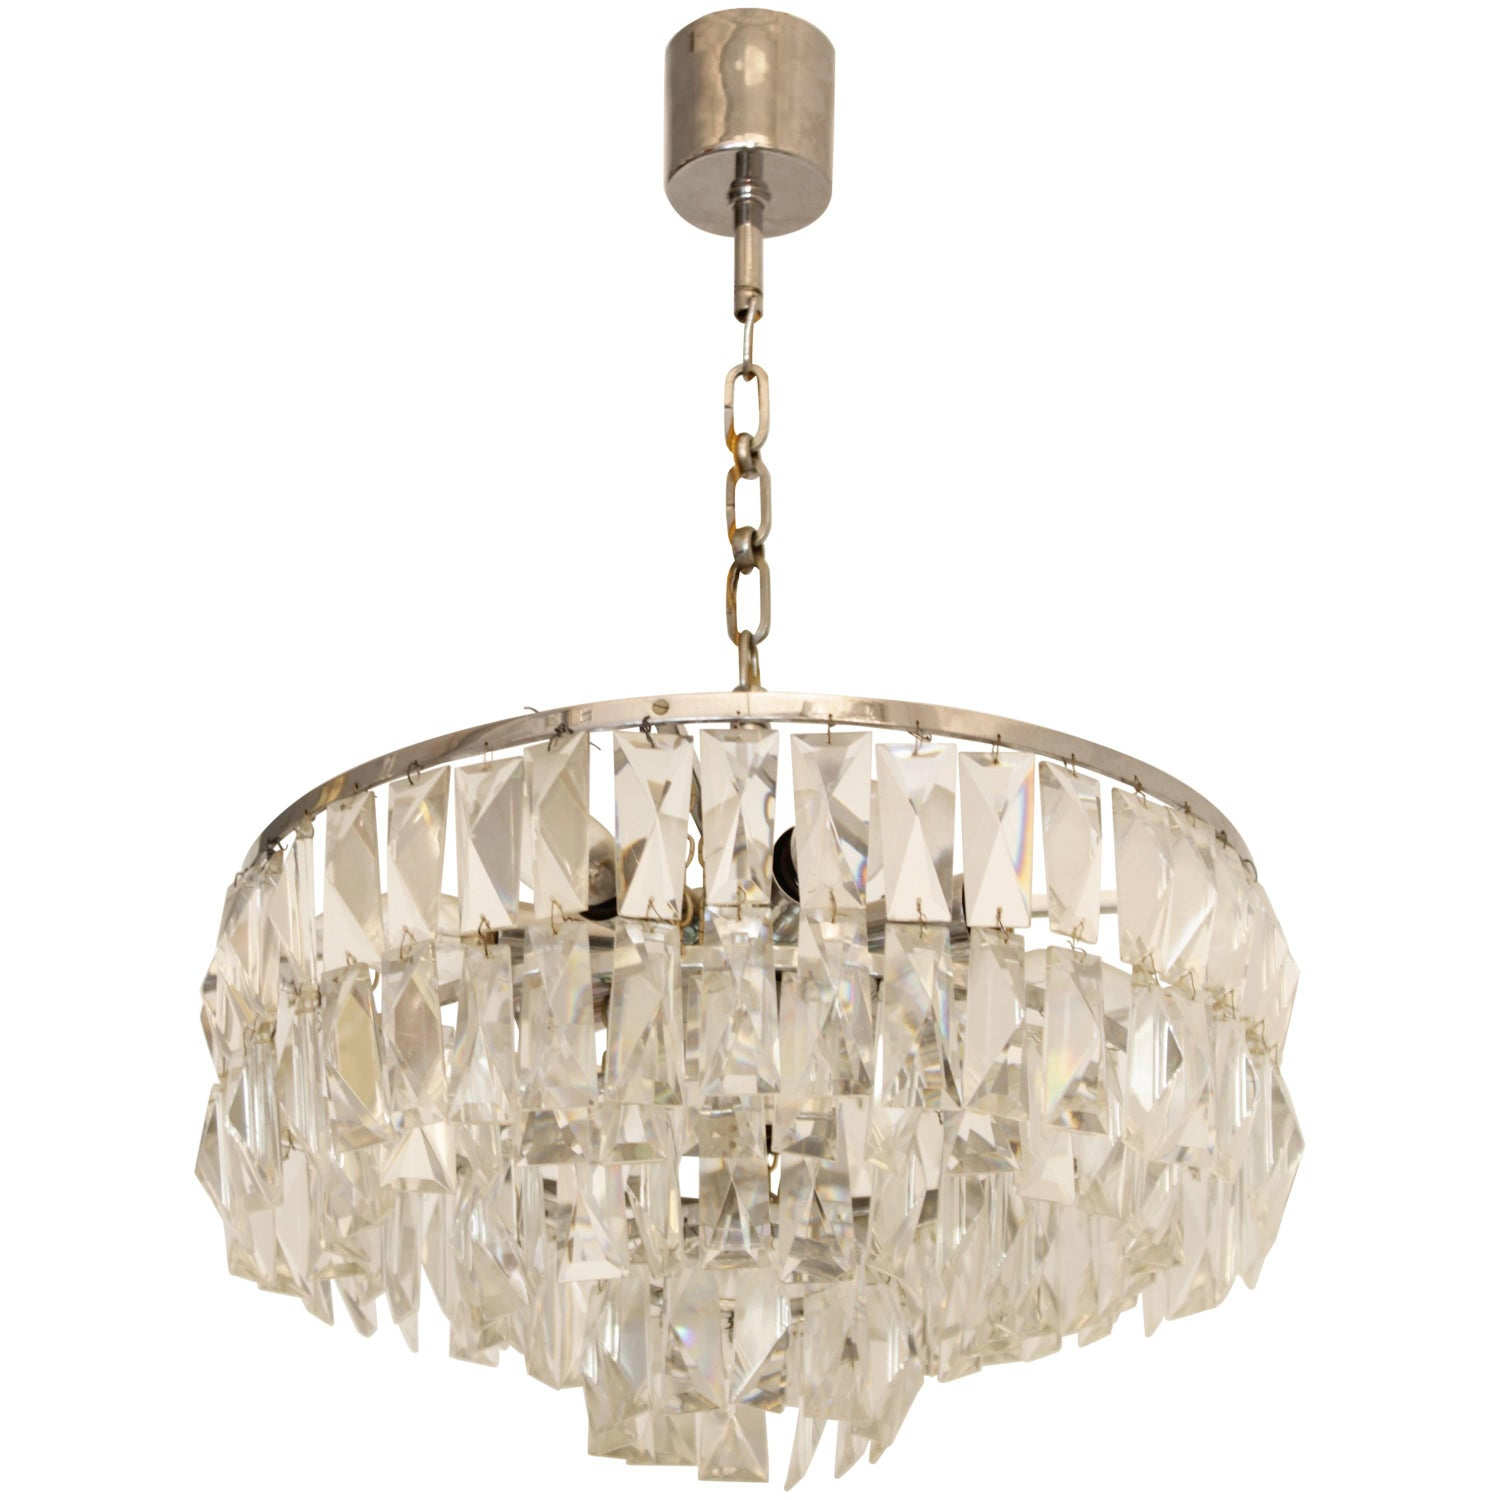 Crystal Drum Chandelier by Bakalowits and Sohne For Sale at 1stdibs